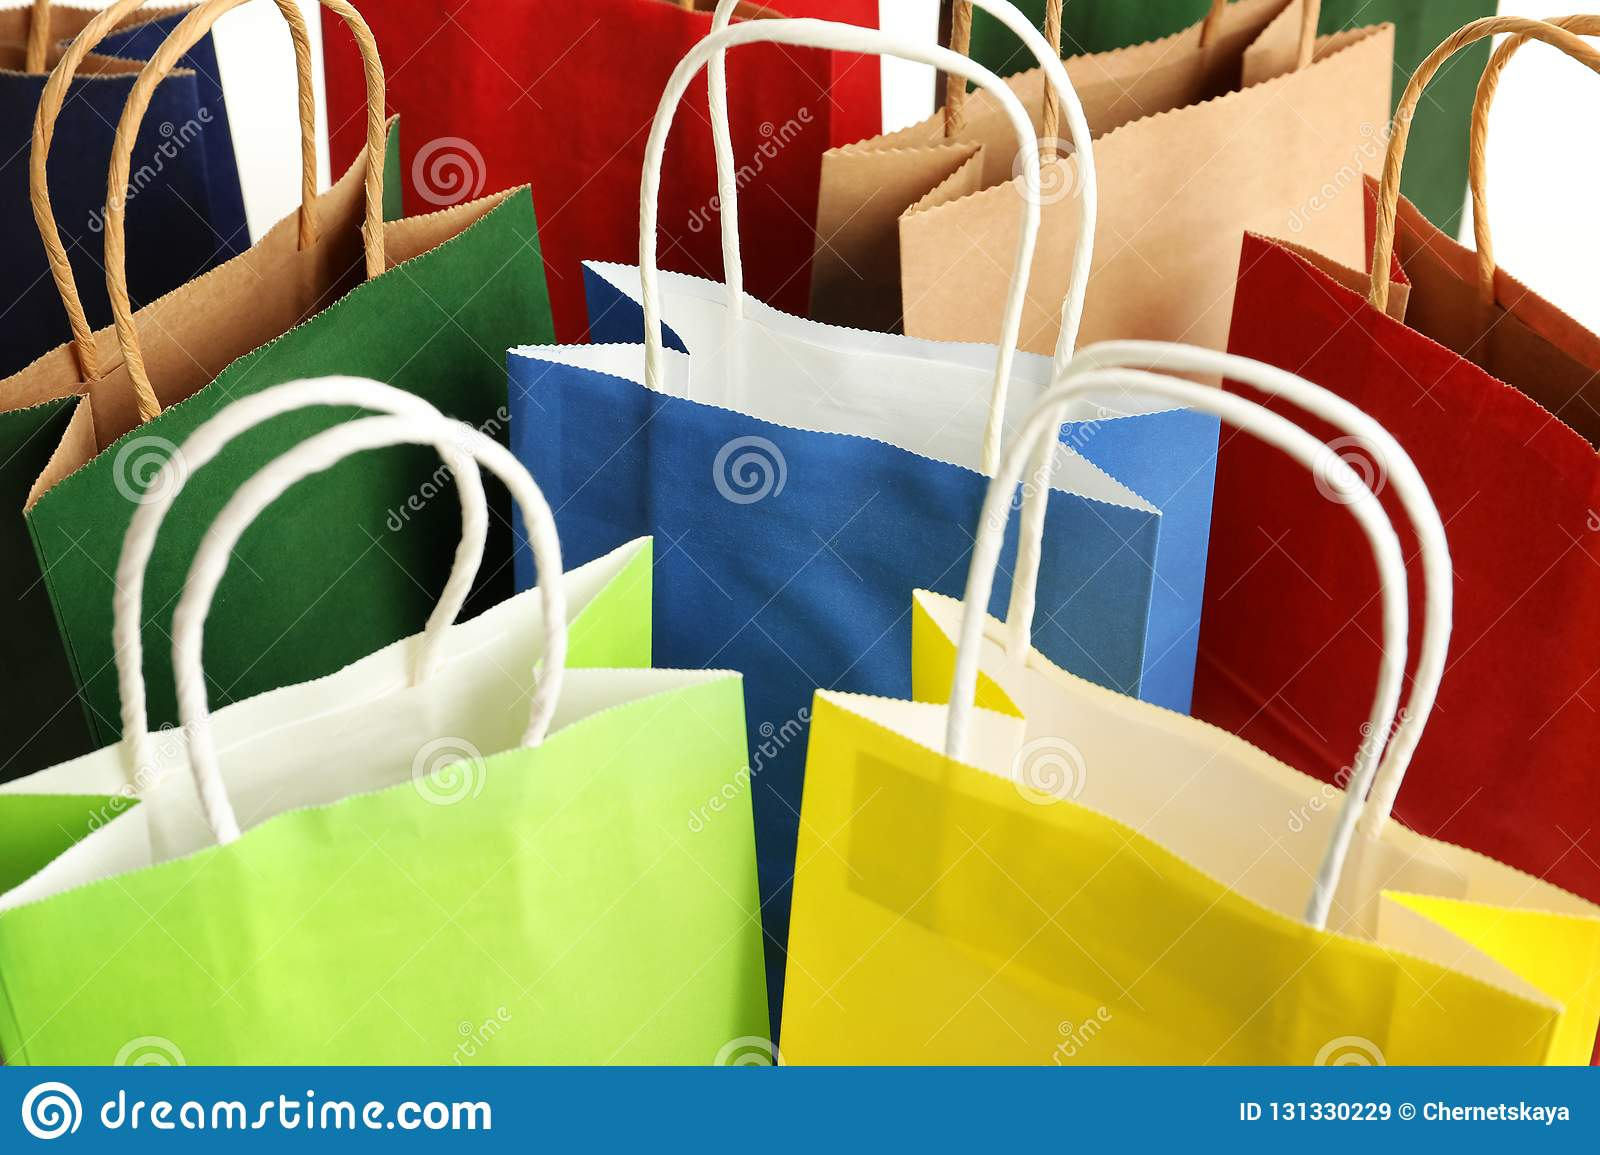 Colorful paper shopping bags as background